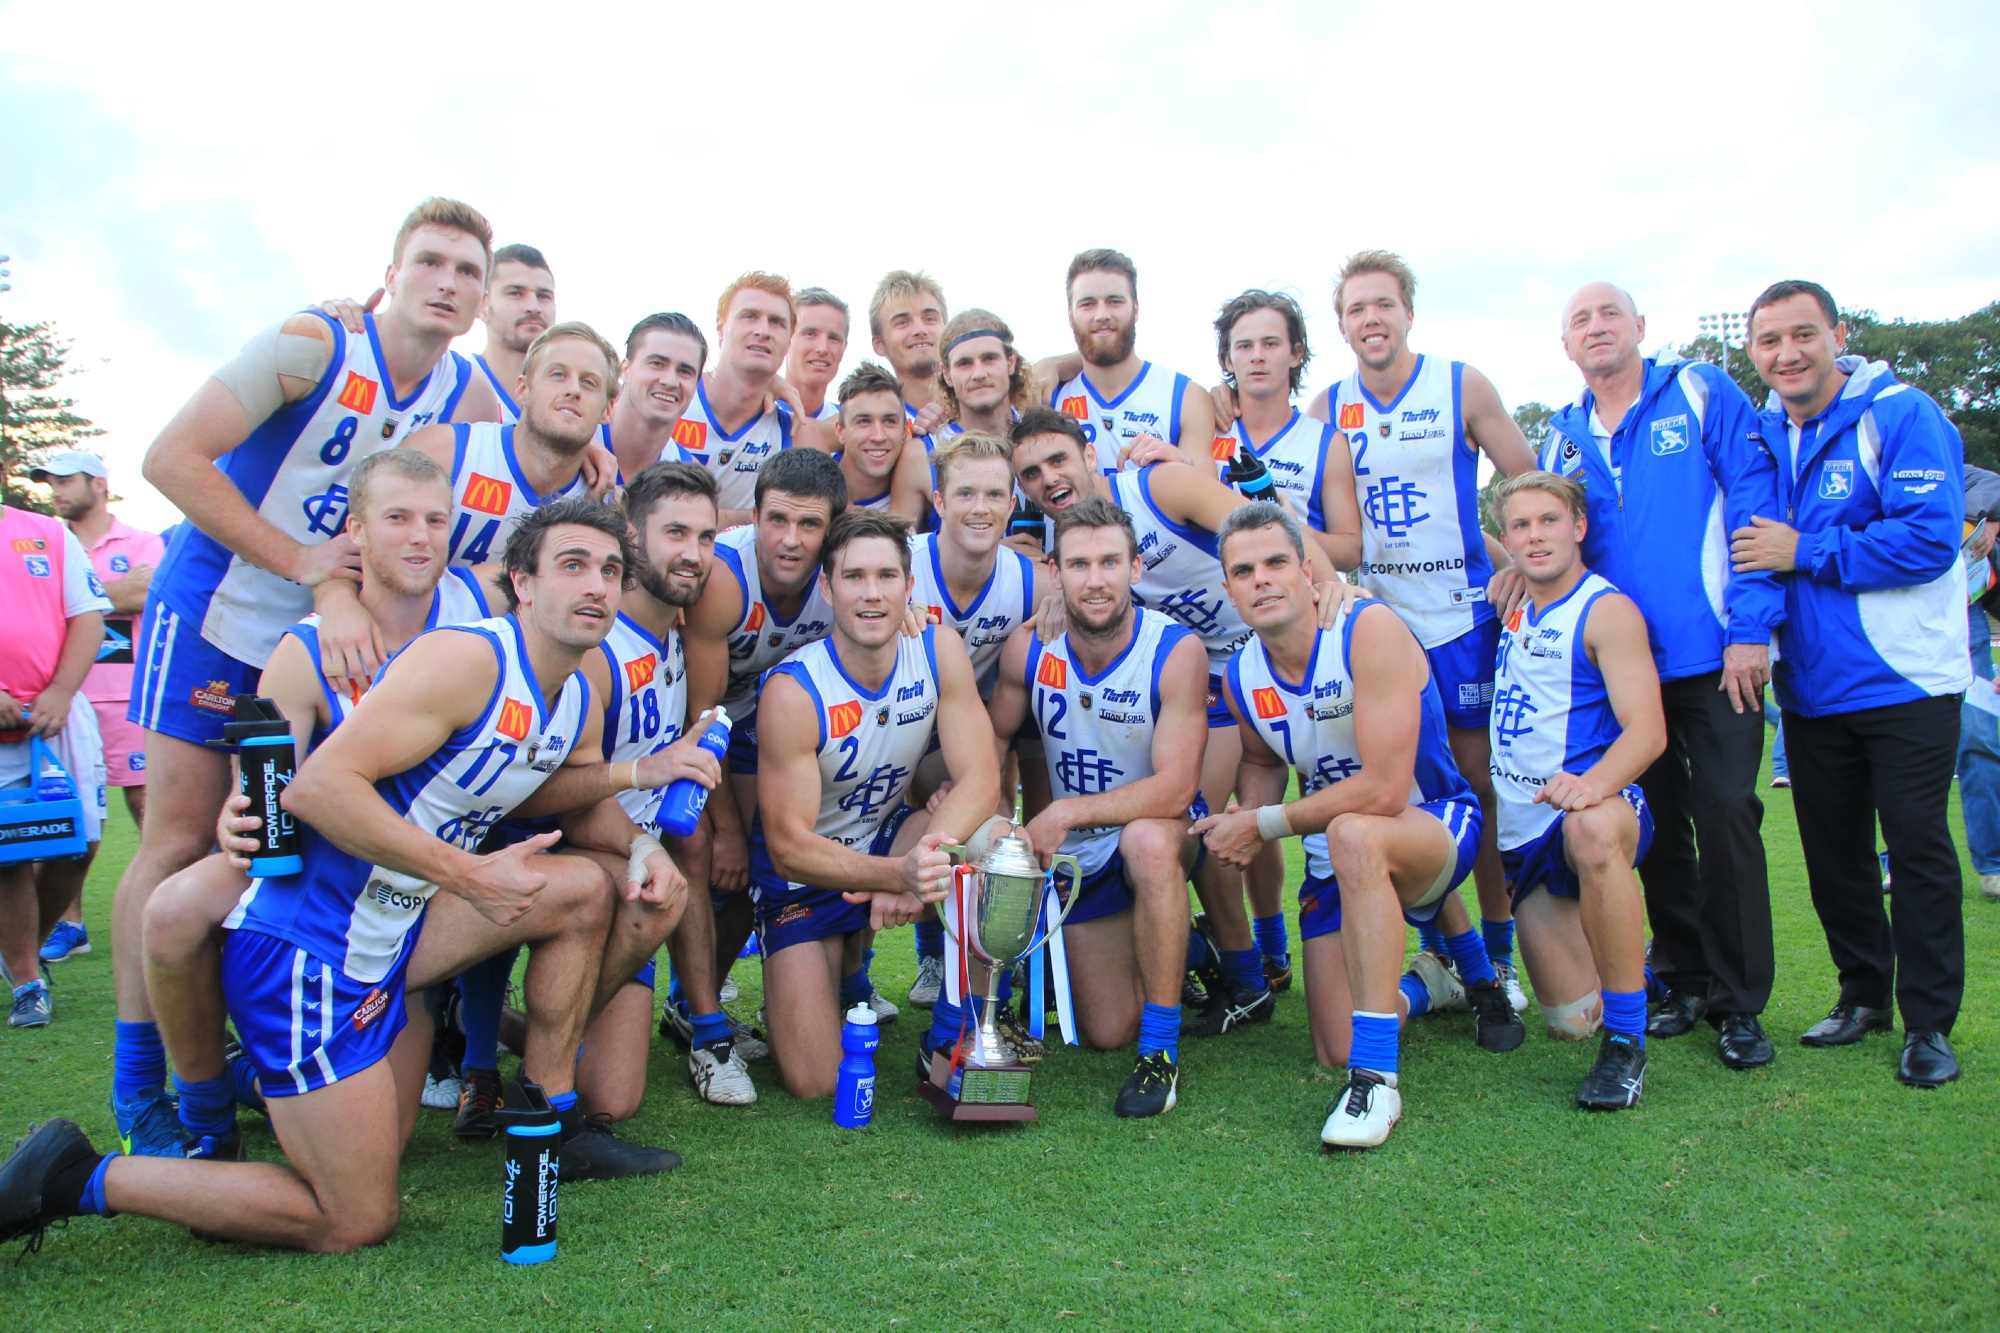 East Fremantle celebrates its derby win at Fremantle Oval on Monday. Picture: Phil Elliott/ PixEll Photography.